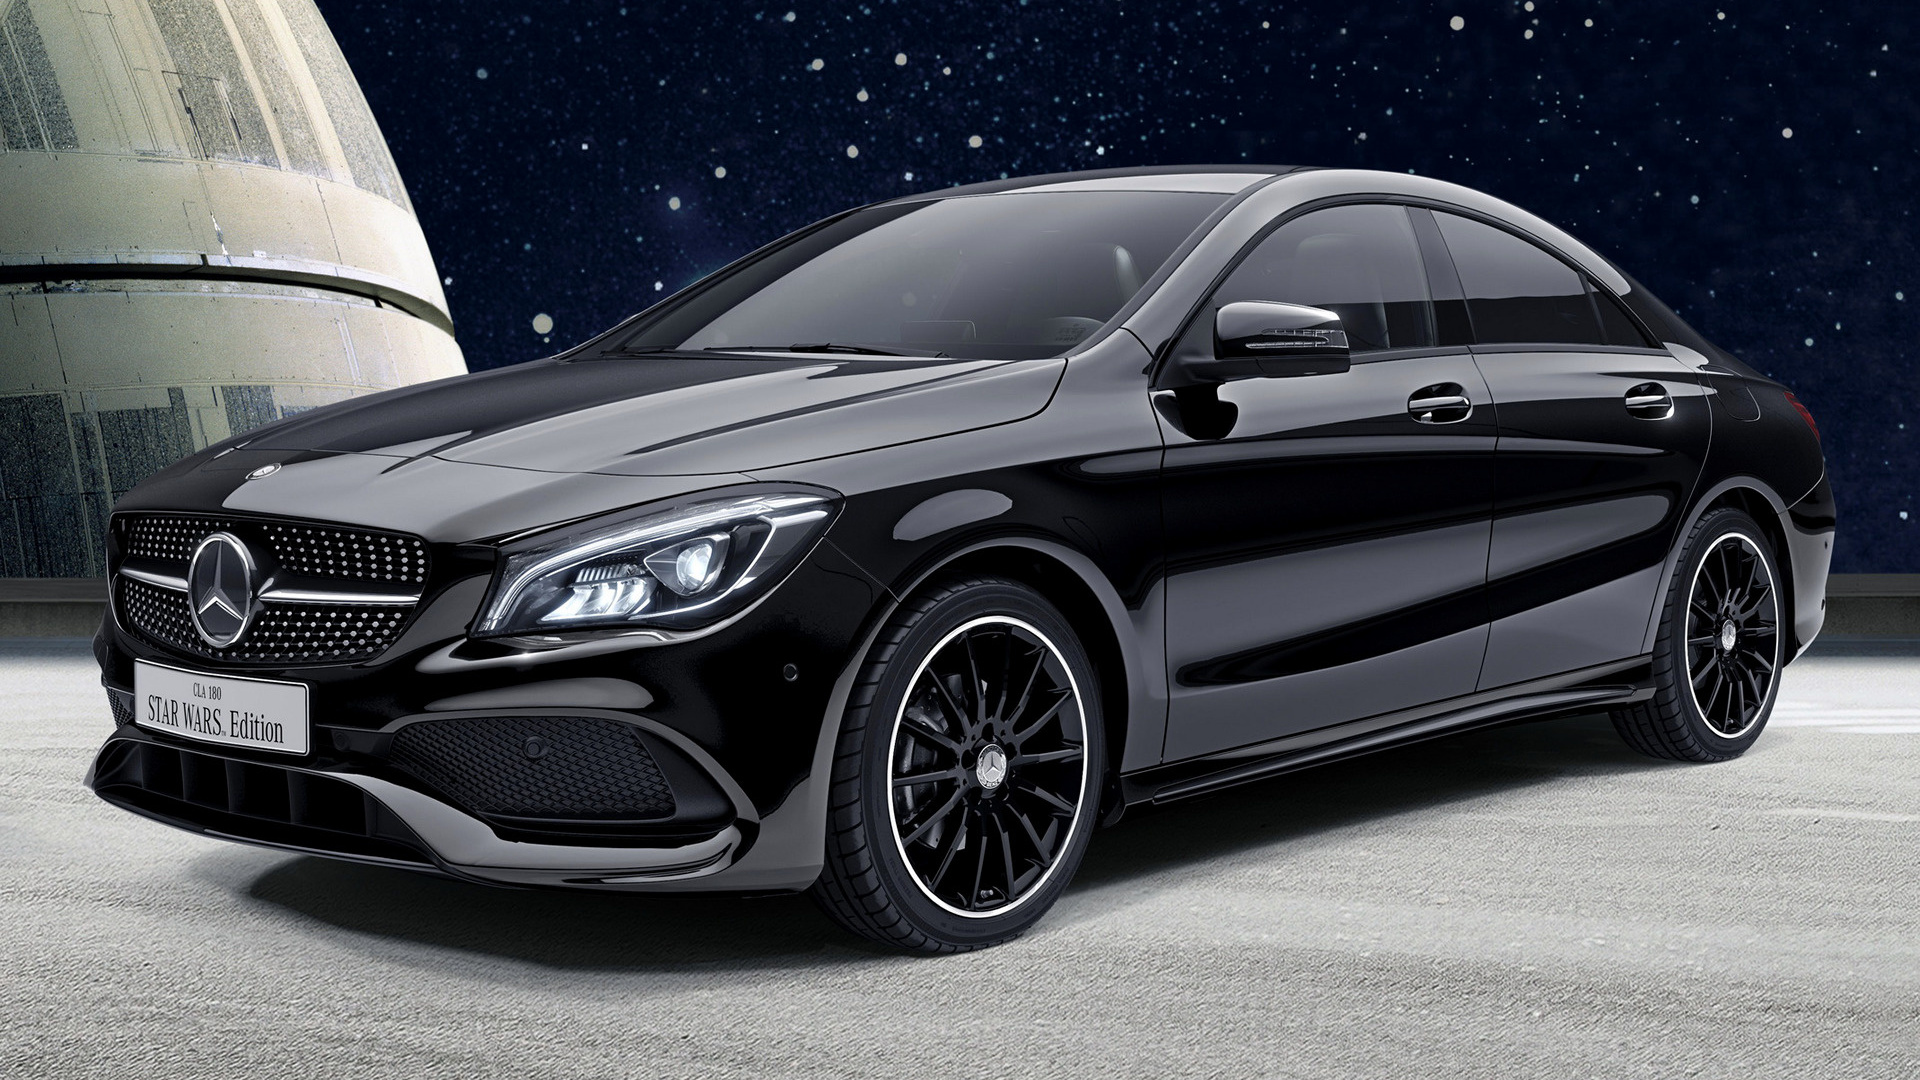 mercedes benz cla class star wars edition 2017 jp wallpapers and hd images car pixel. Black Bedroom Furniture Sets. Home Design Ideas